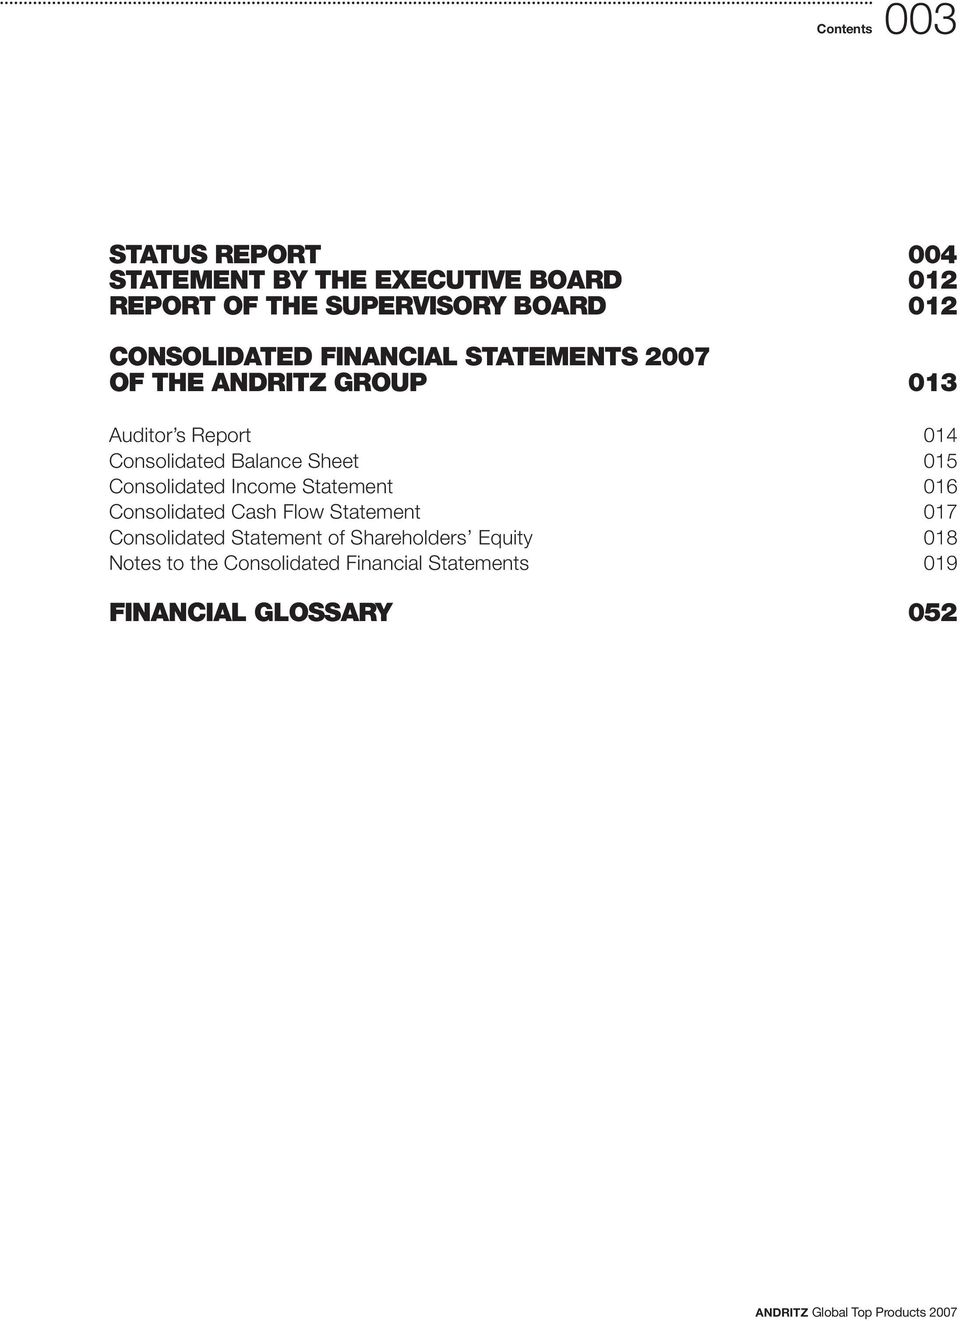 Balance Sheet 015 Consolidated Income Statement 016 Consolidated Cash Flow Statement 017 Consolidated